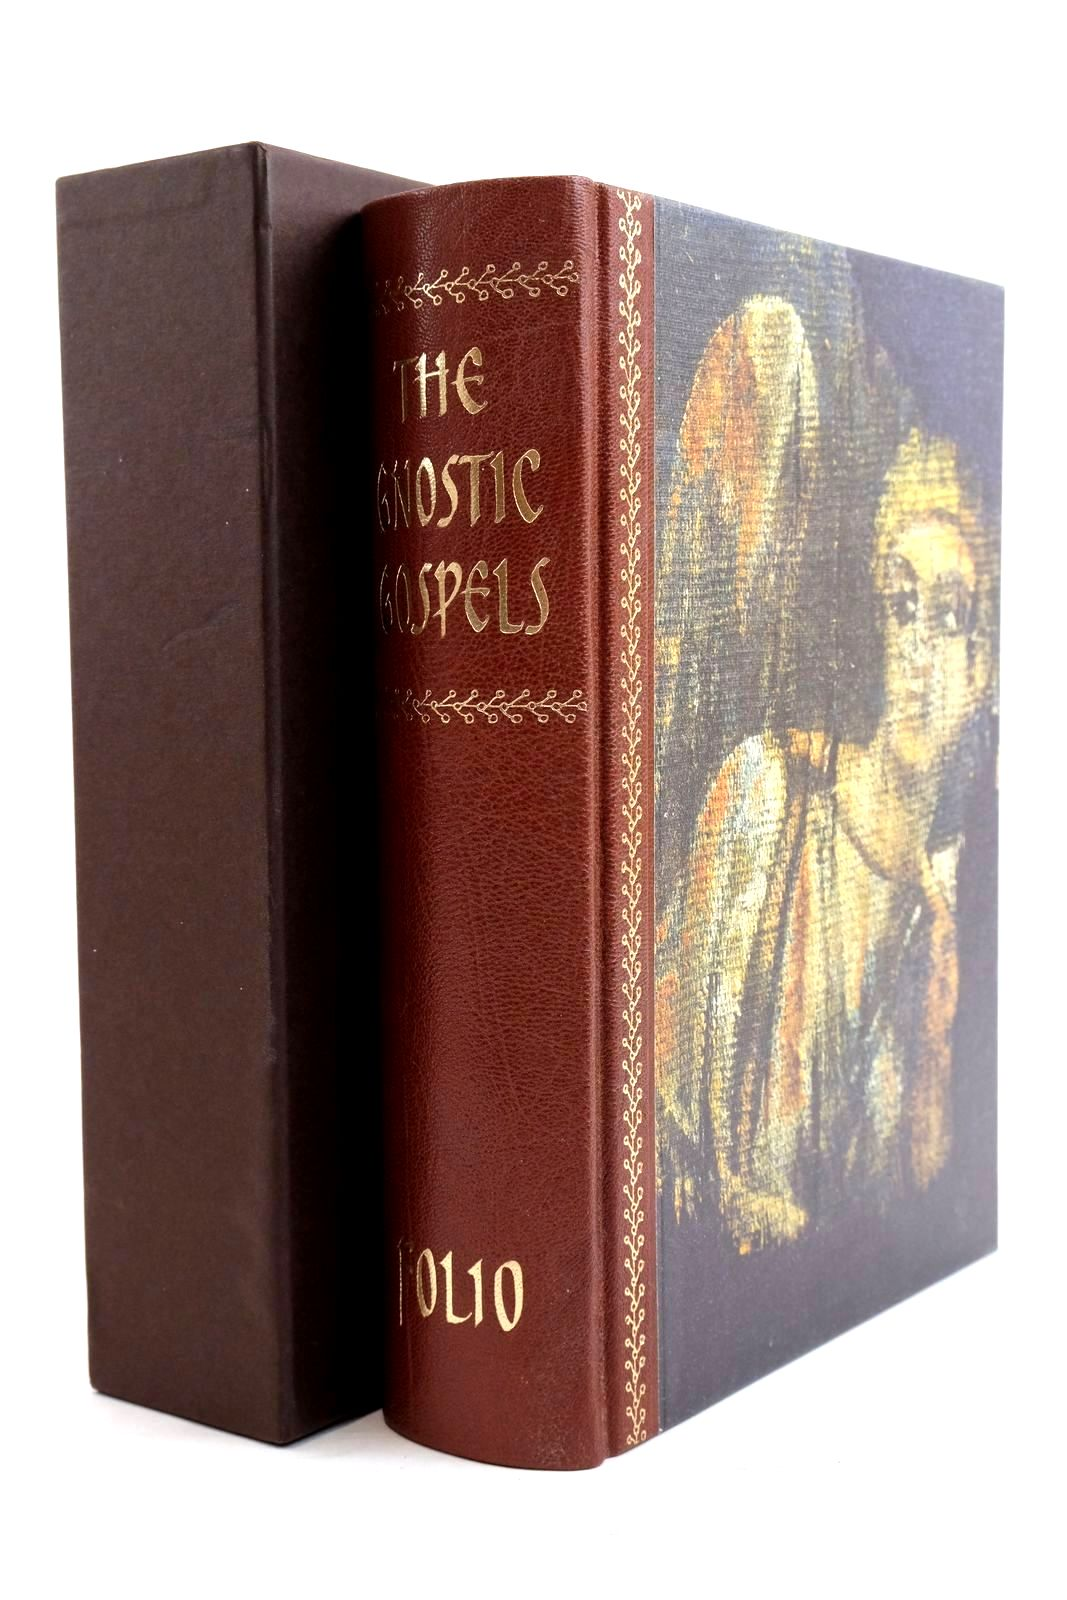 Photo of THE GNOSTIC GOSPELS written by Meyer, Marvin published by Folio Society (STOCK CODE: 1320773)  for sale by Stella & Rose's Books